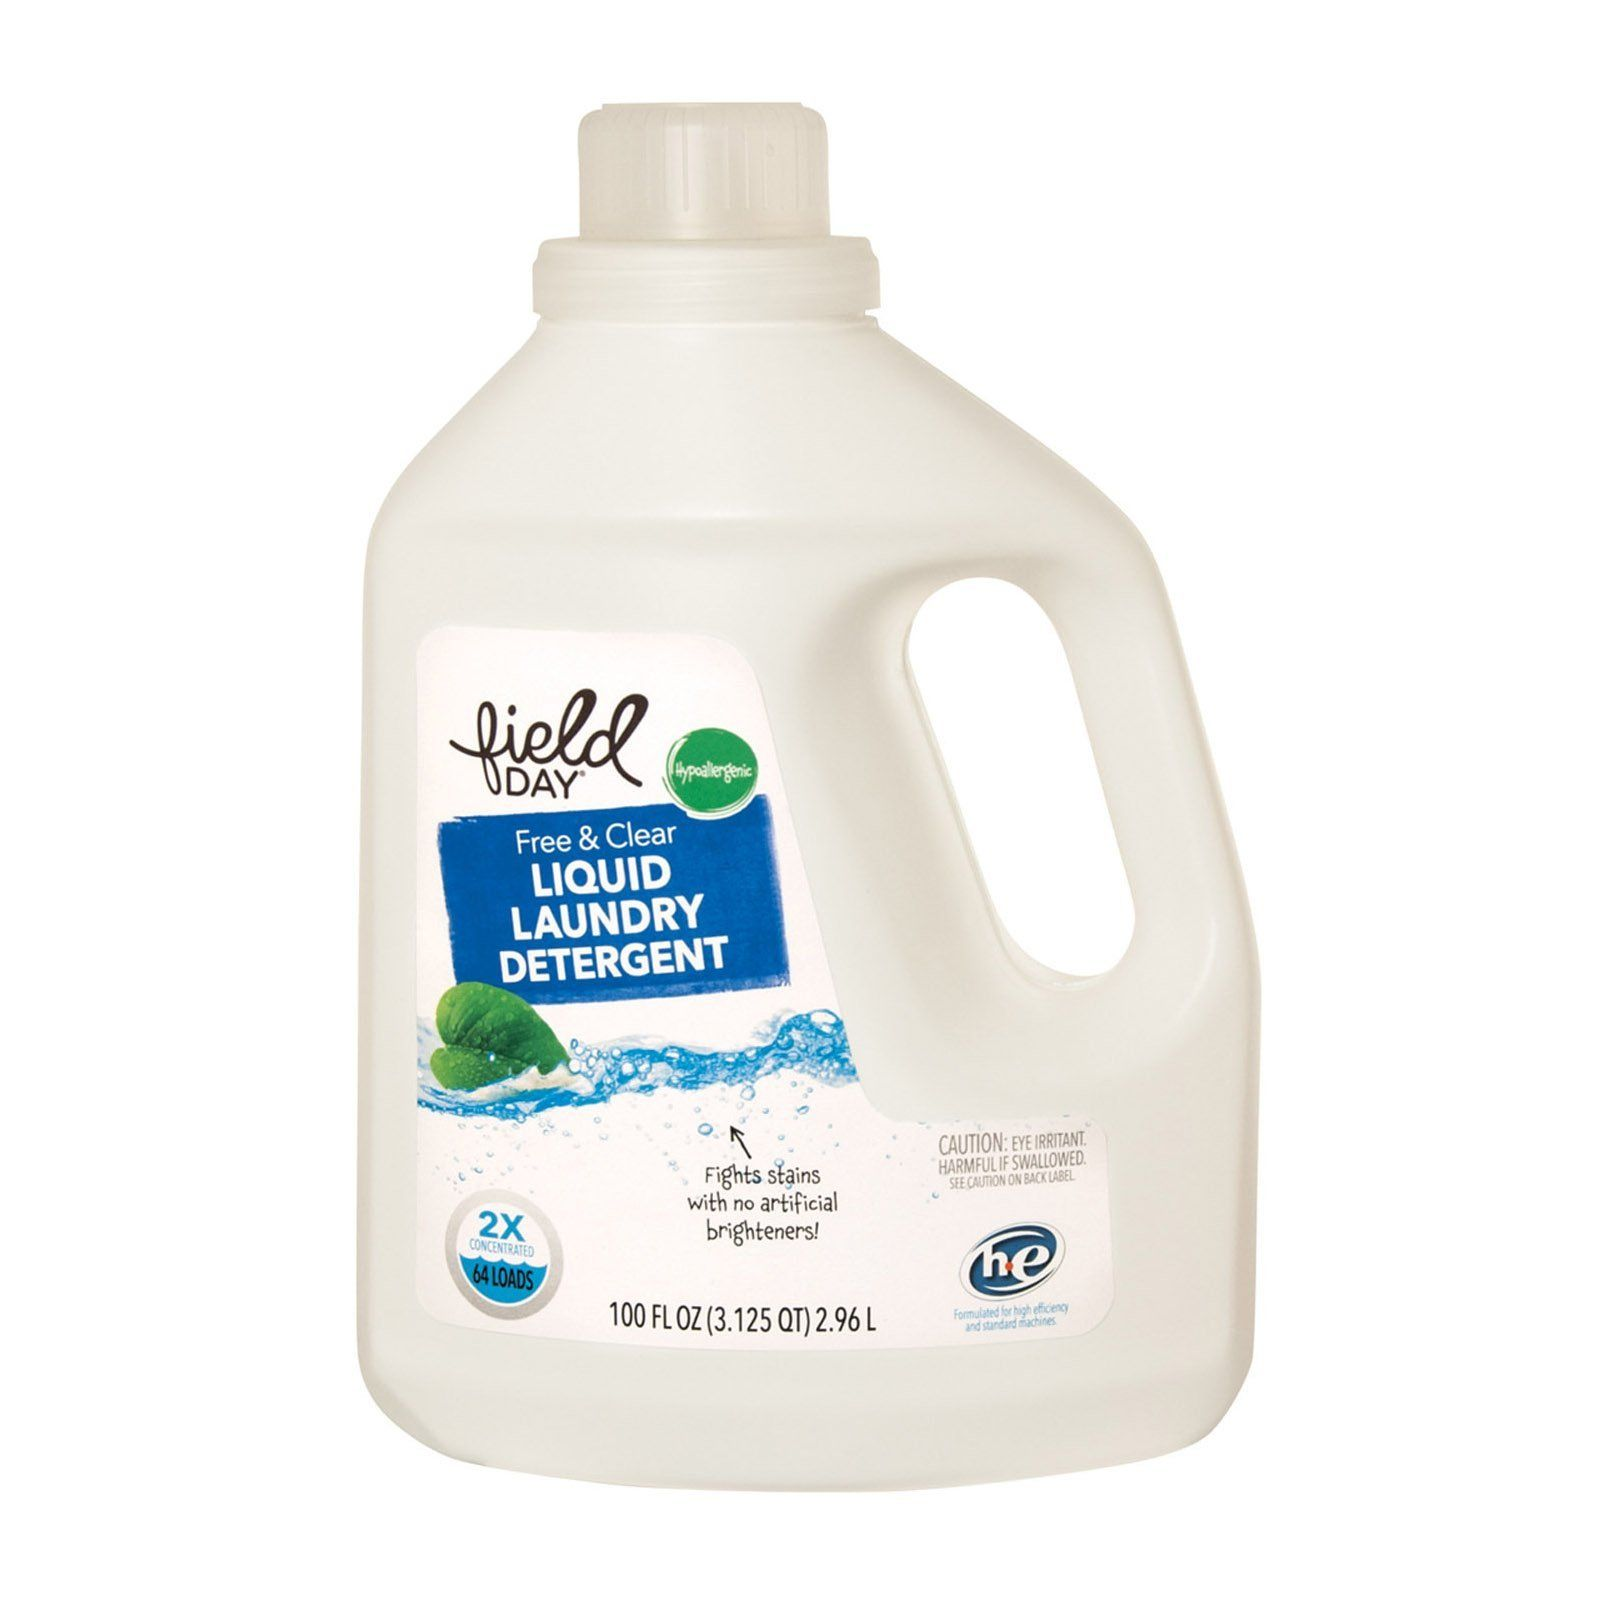 Field Day Free And Clear Liquid Laundry Detergent Detergent